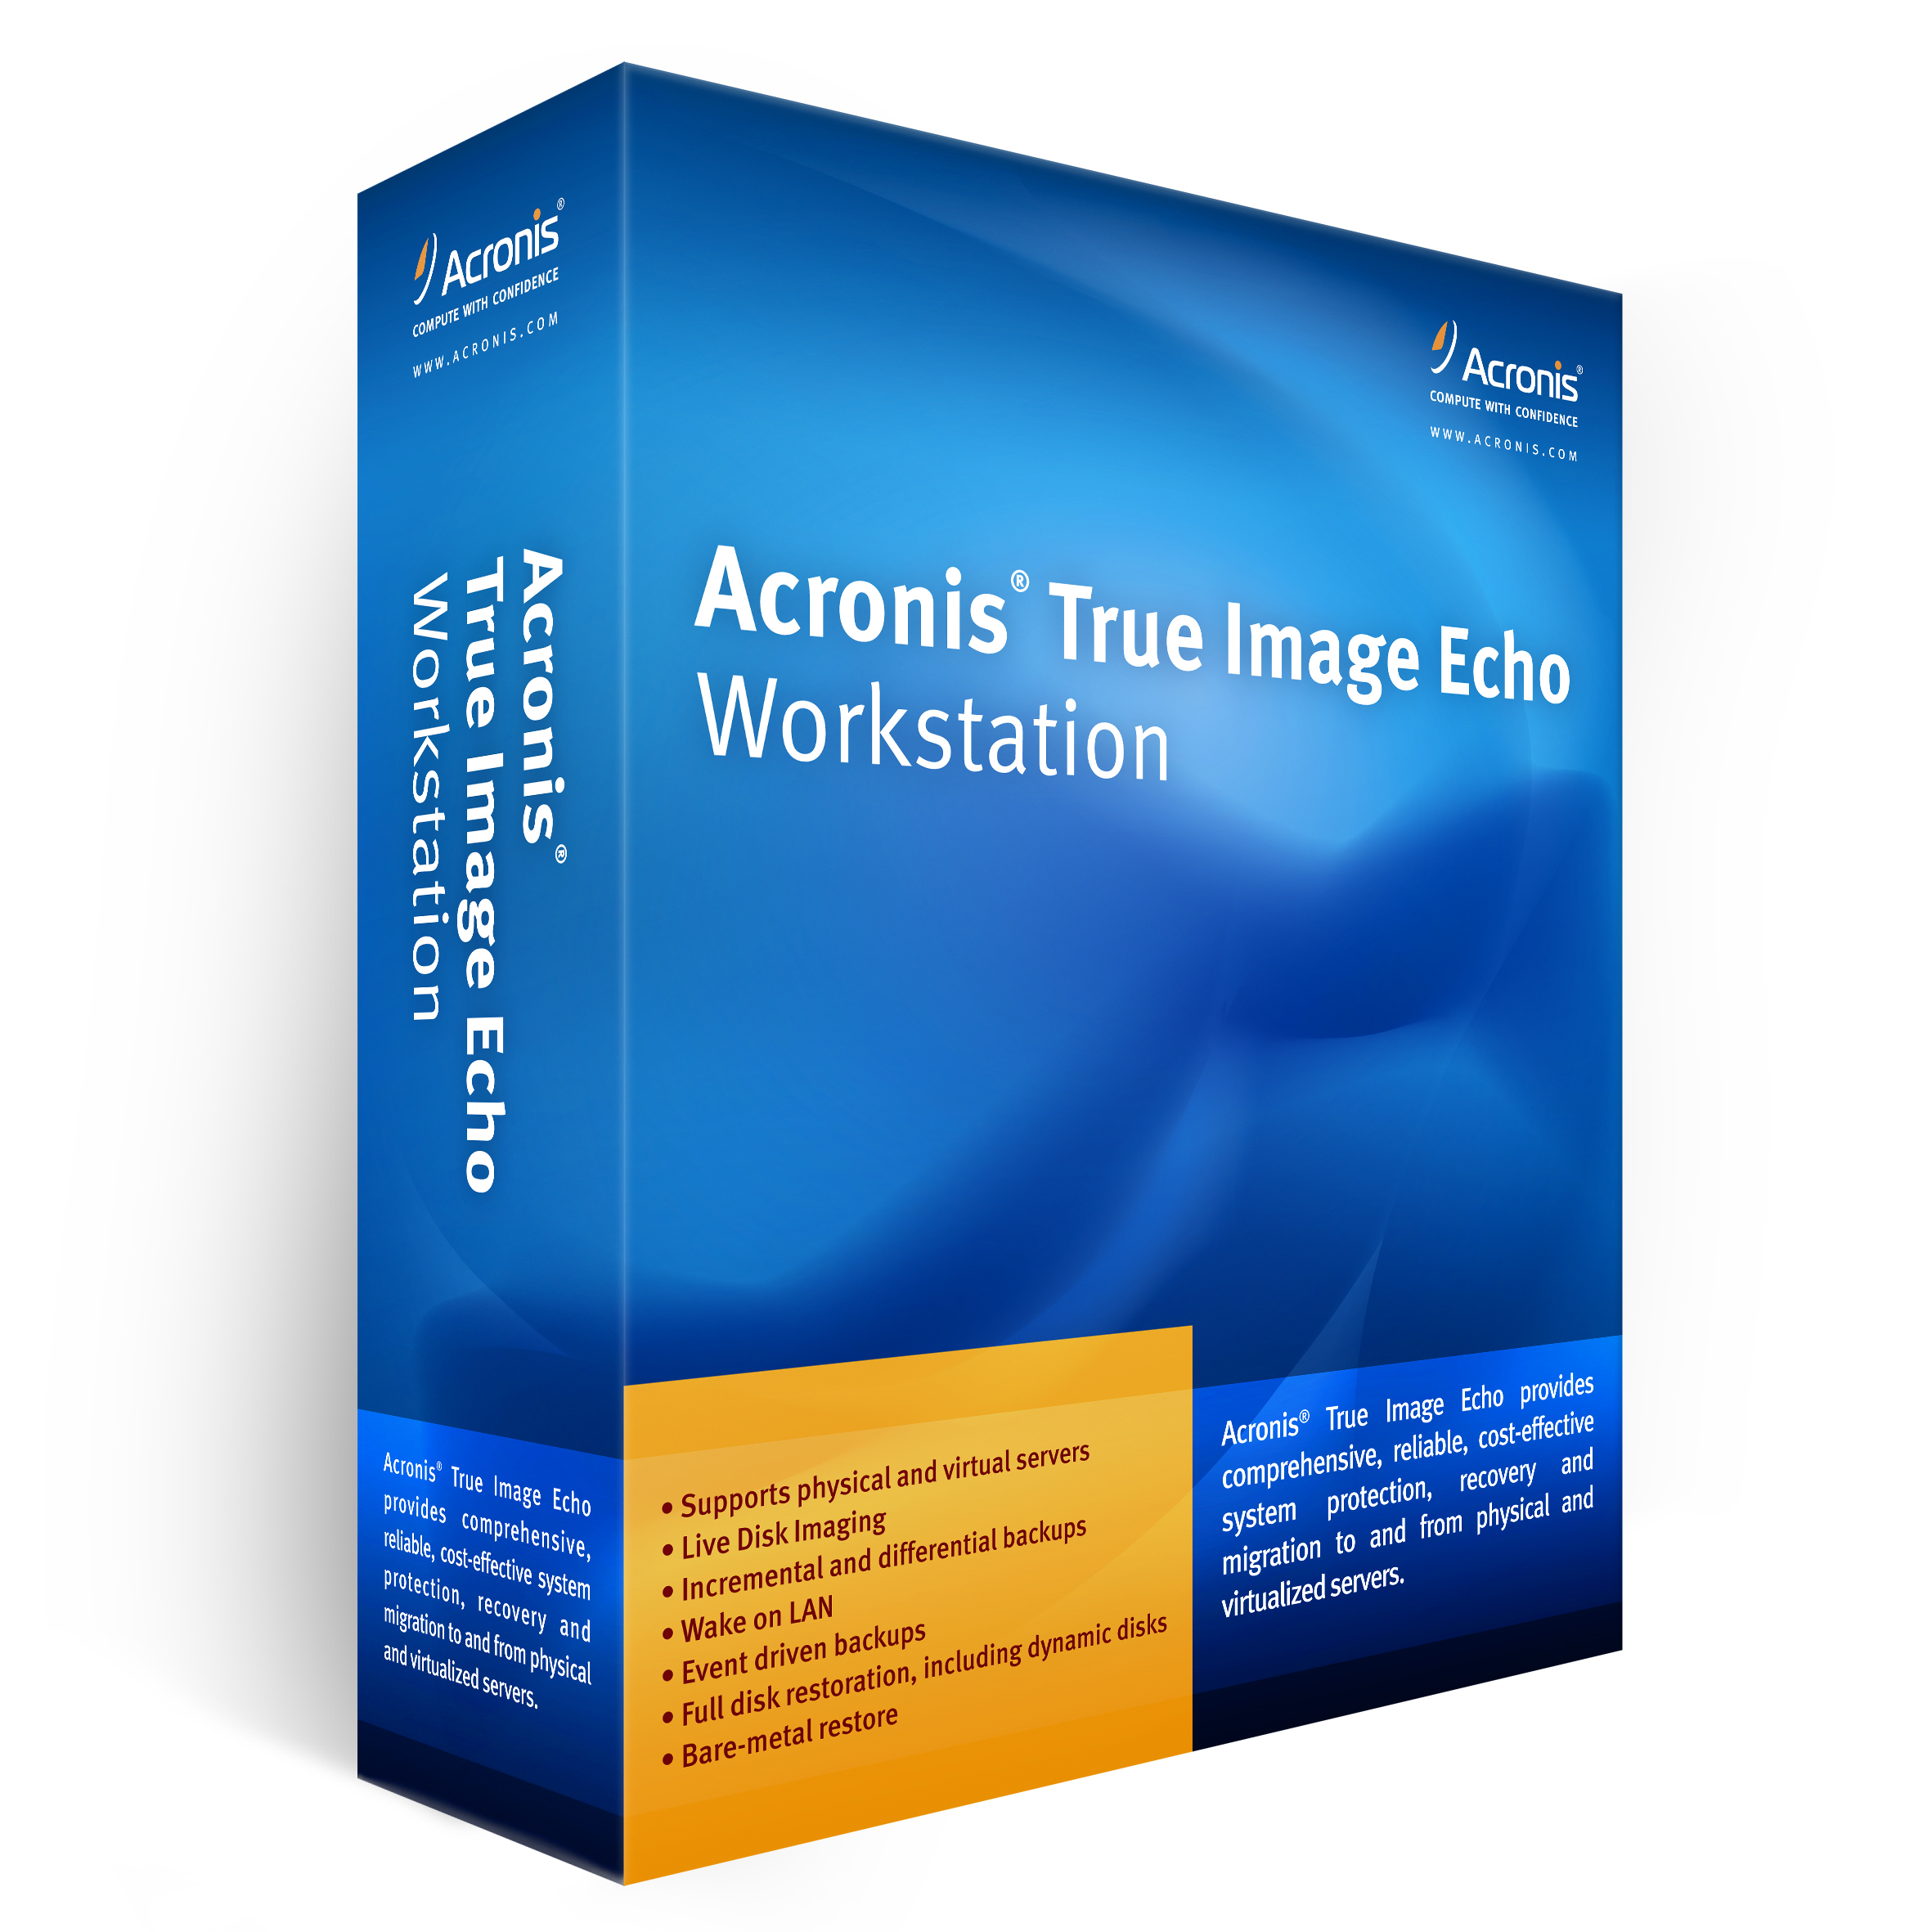 Acronis true image echo workstation 9.5 download